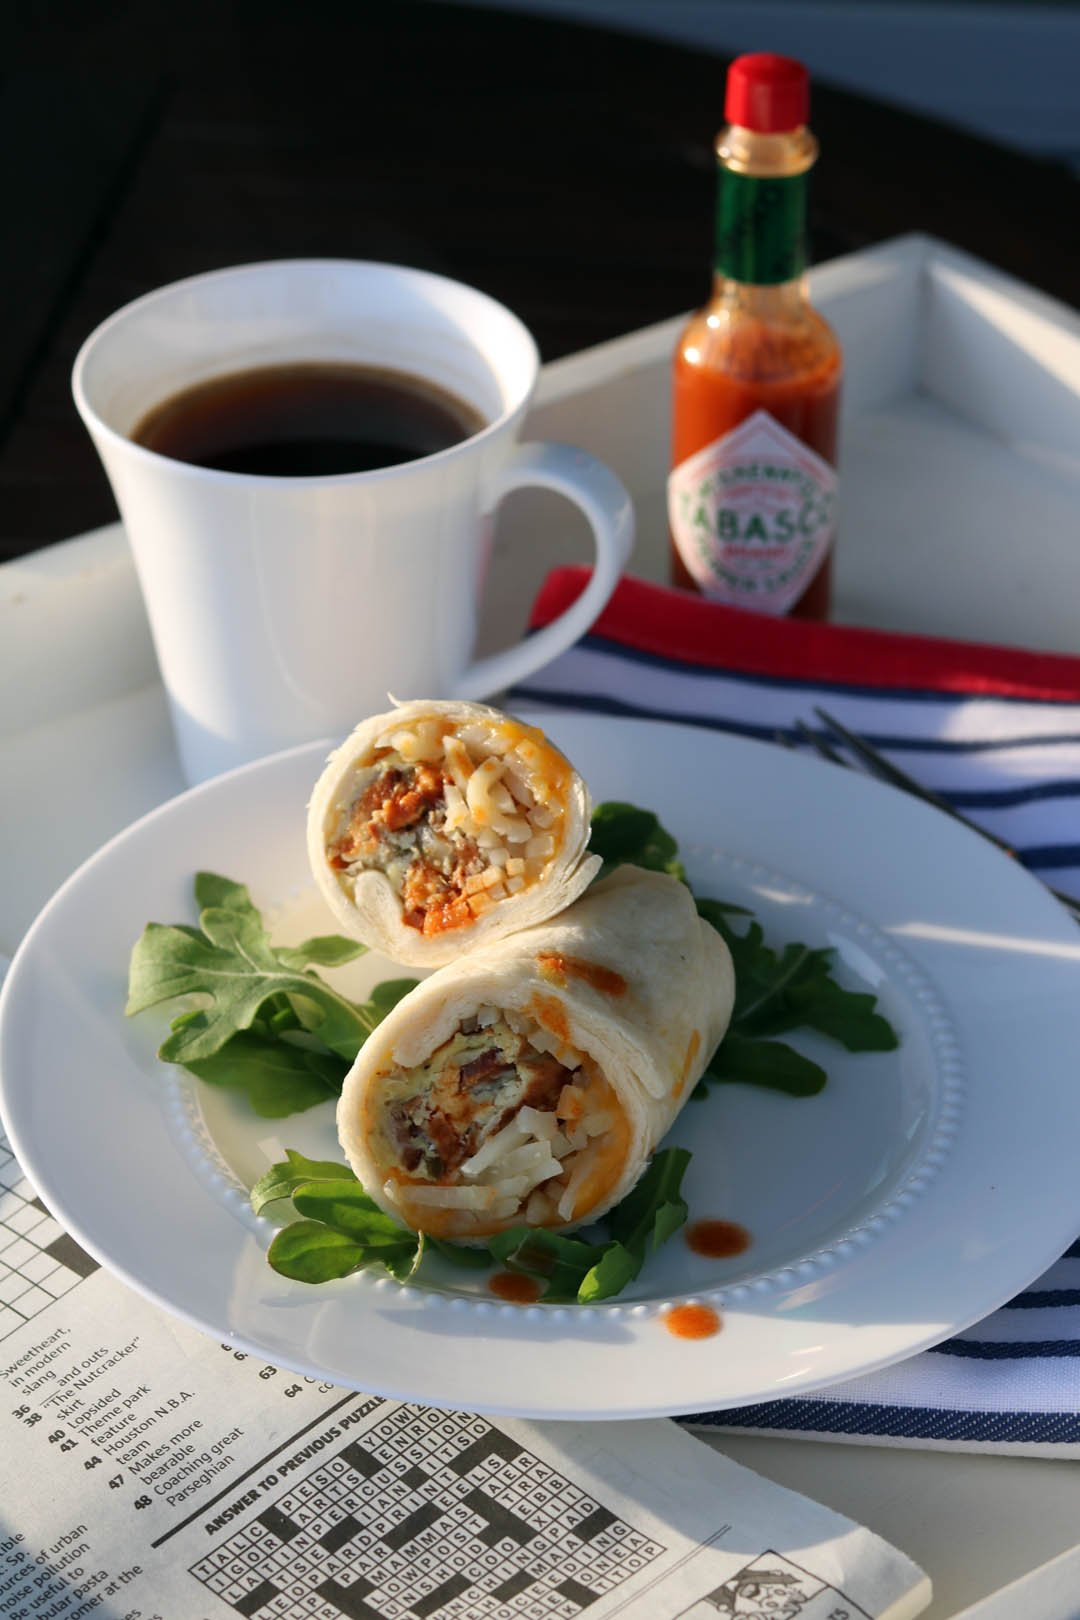 Breakfast burritos to grab-and-go on a tray on plate with cup of coffee and hot sauce on top of crossword puzzle.